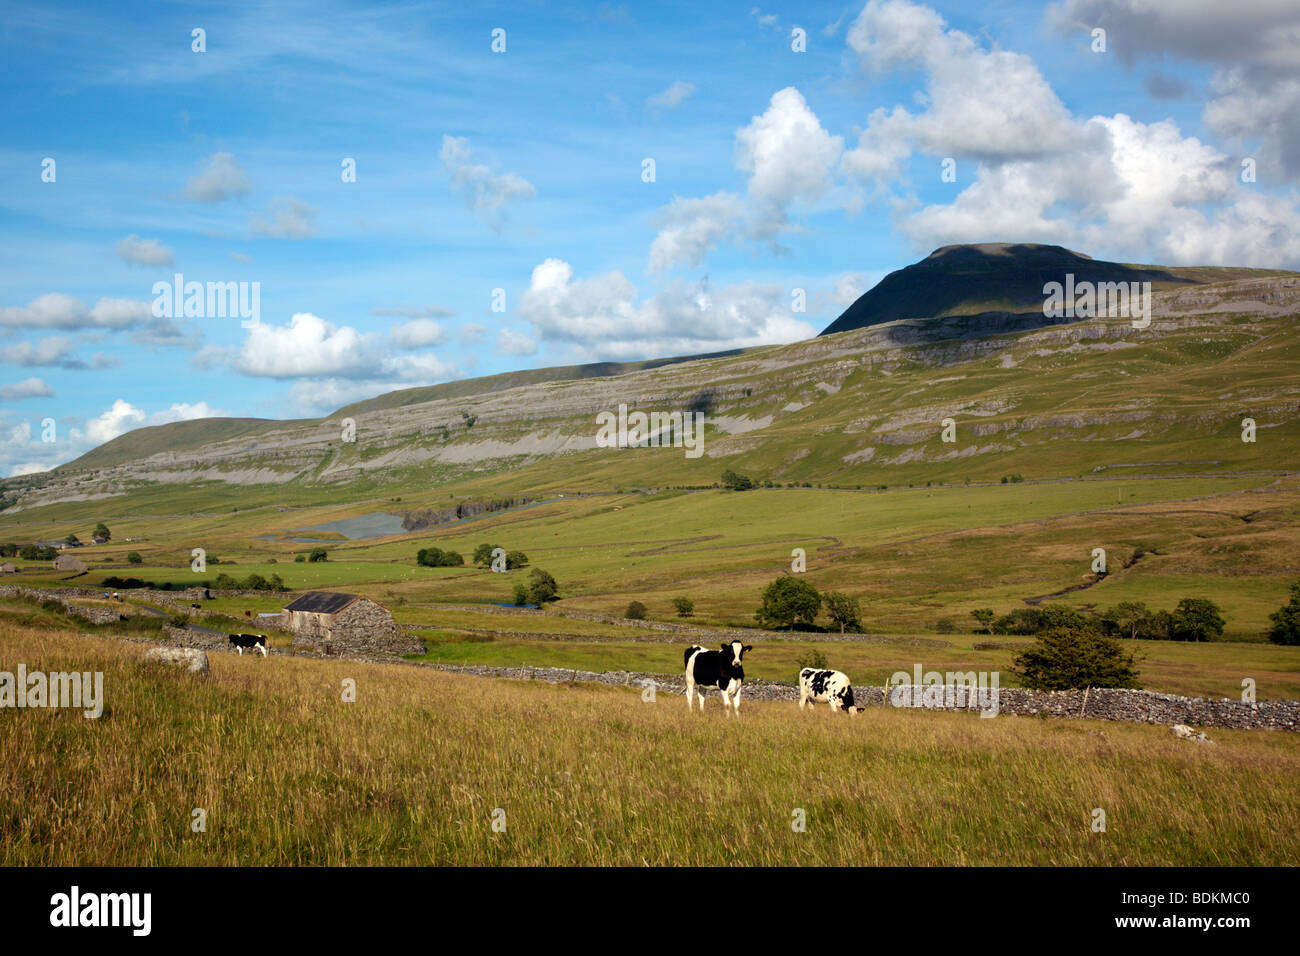 Ingleborough looking over the Doe valley from Twistleton in the Yorkshire Dales England UK - Stock Image